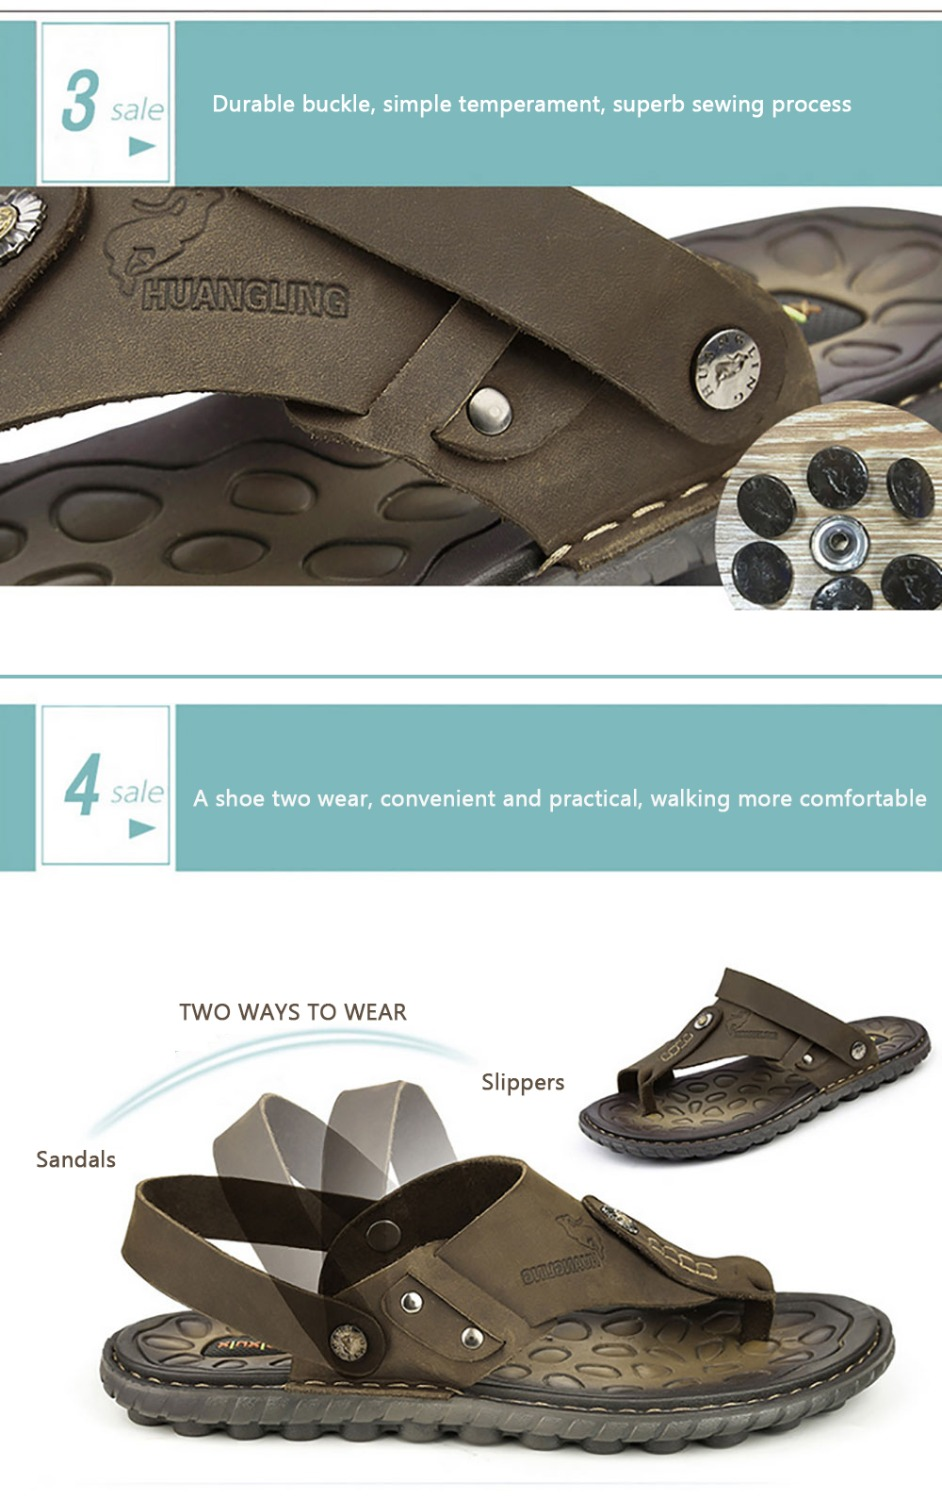 347c90f43 Summer Men Home Slippers Luxury Men Sandals Zapatos Hombre Casual Beach  Flip Flops Men Slippers Genuine Leather Chaussure Homme -in Men s Sandals  from Shoes ...